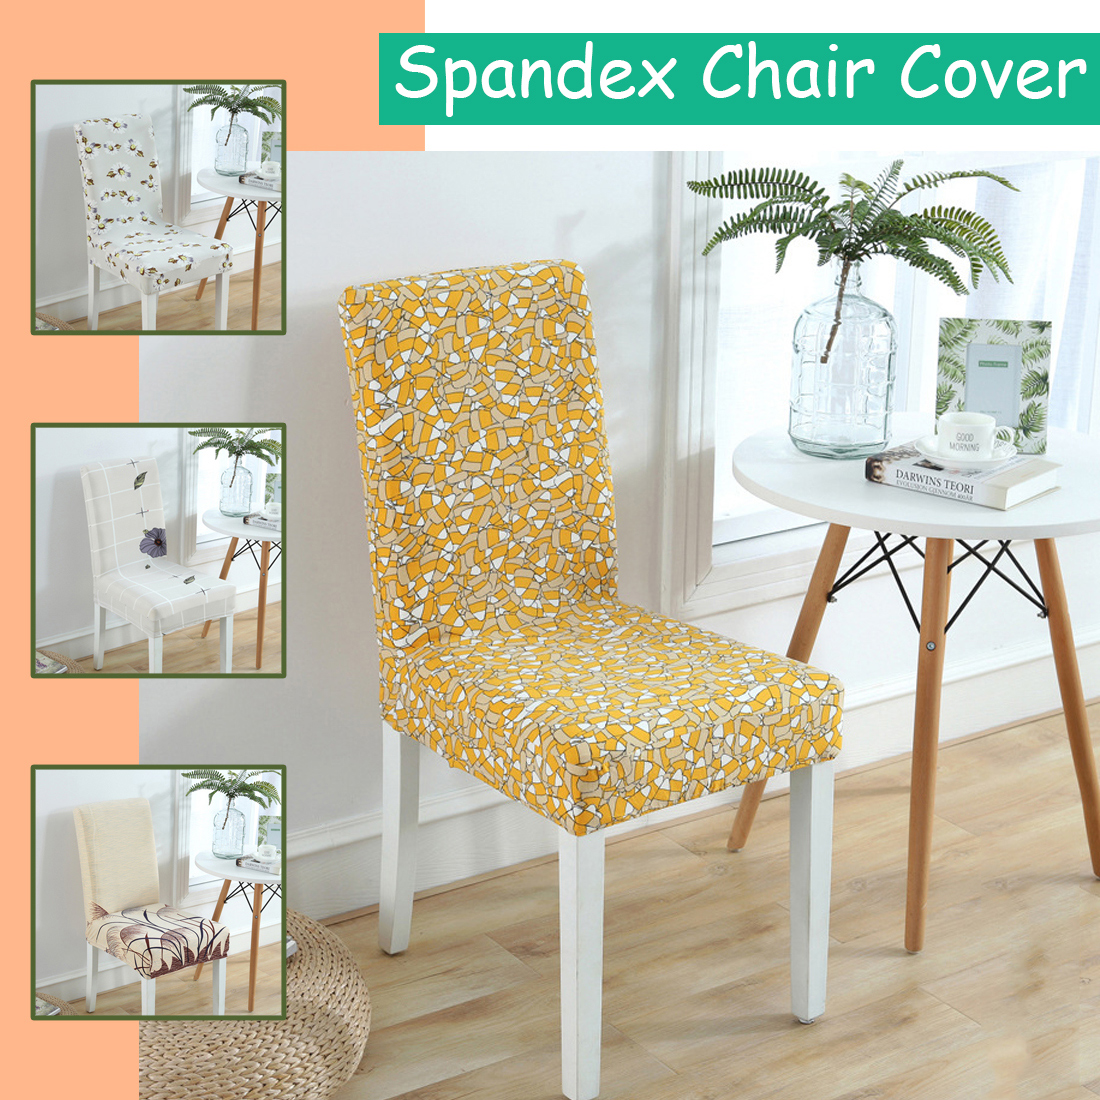 dining chair covers aliexpress how to recover room chairs decor cover universal removable stretch